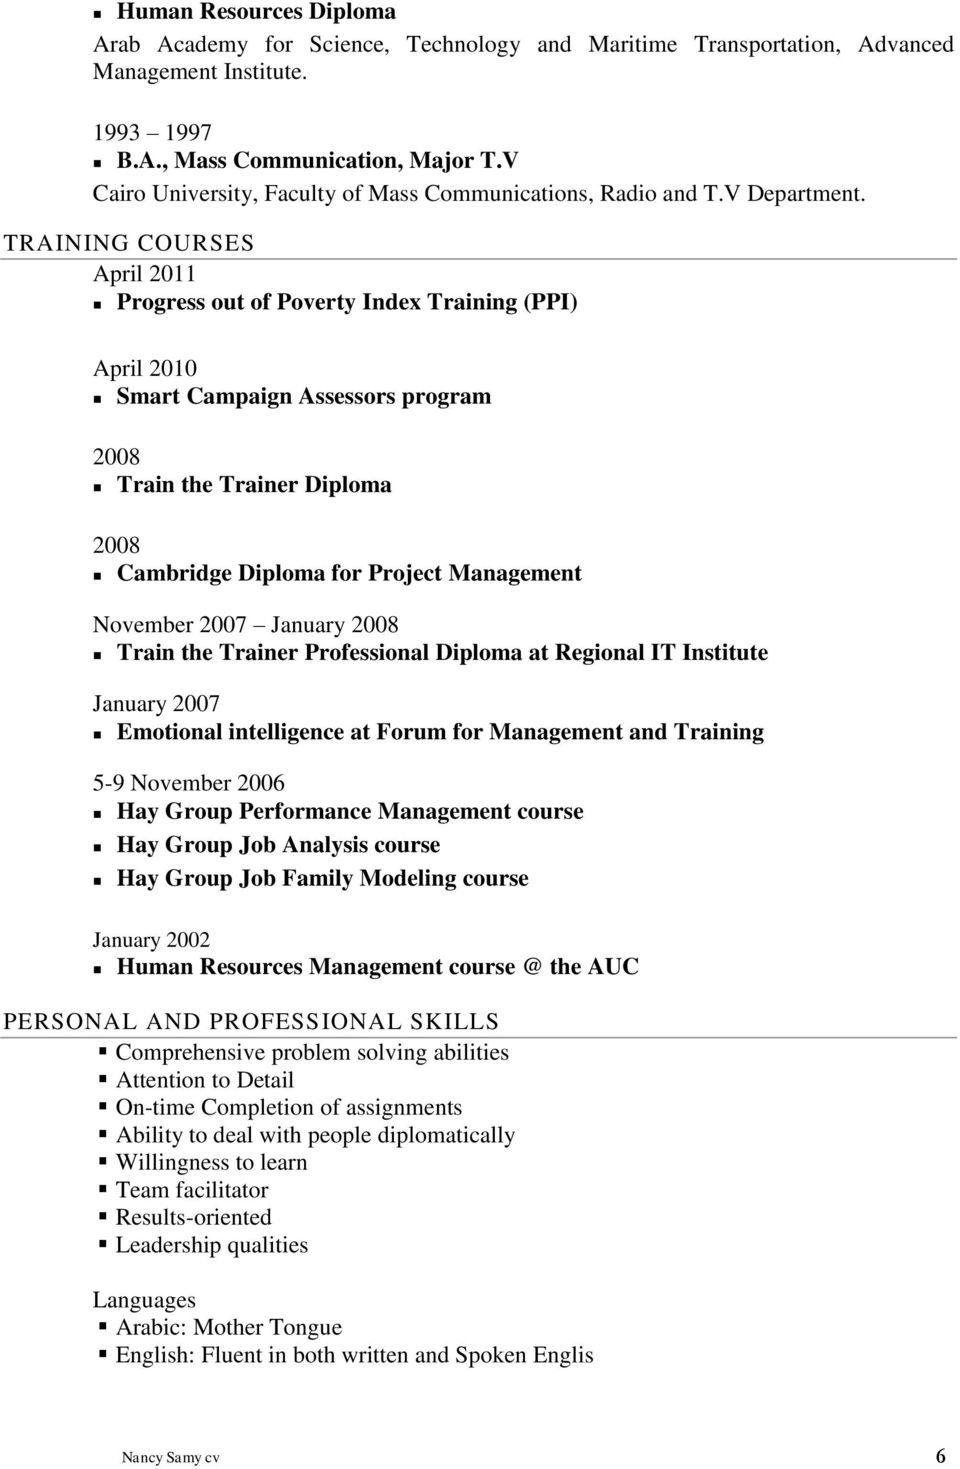 TRAINING COURSES April 2011 Progress out of Poverty Index Training (PPI) April 2010 Smart Campaign Assessors program 2008 Train the Trainer Diploma 2008 Cambridge Diploma for Project Management